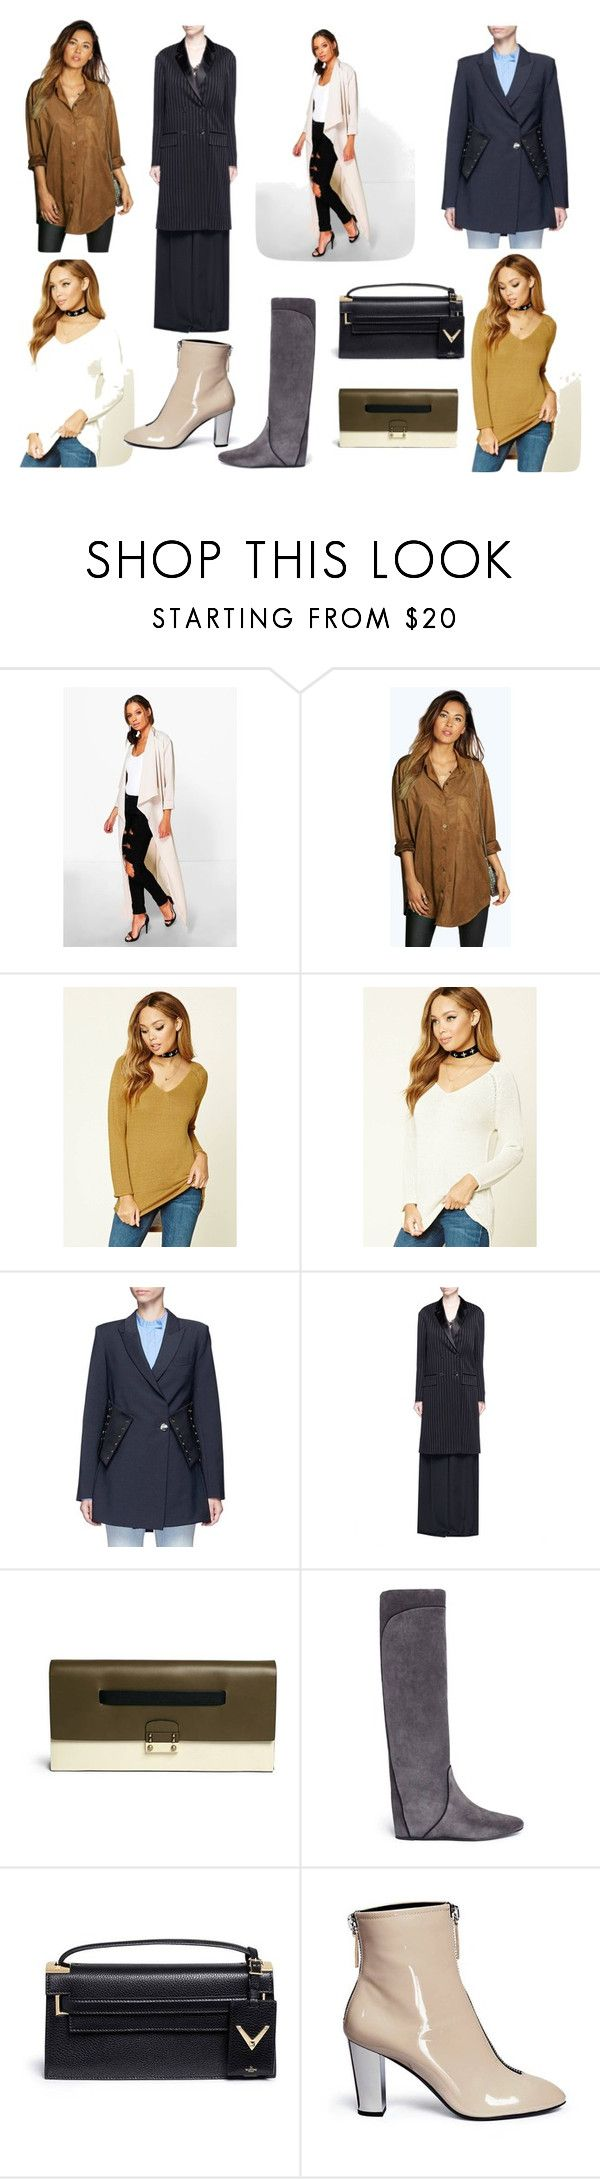 """""""Sensational sale..."""" by cate-jennifer ❤ liked on Polyvore featuring Boohoo, Forever 21, E L L E R Y, Givenchy, Valentino, Lanvin, Giuseppe Zanotti and vintage"""